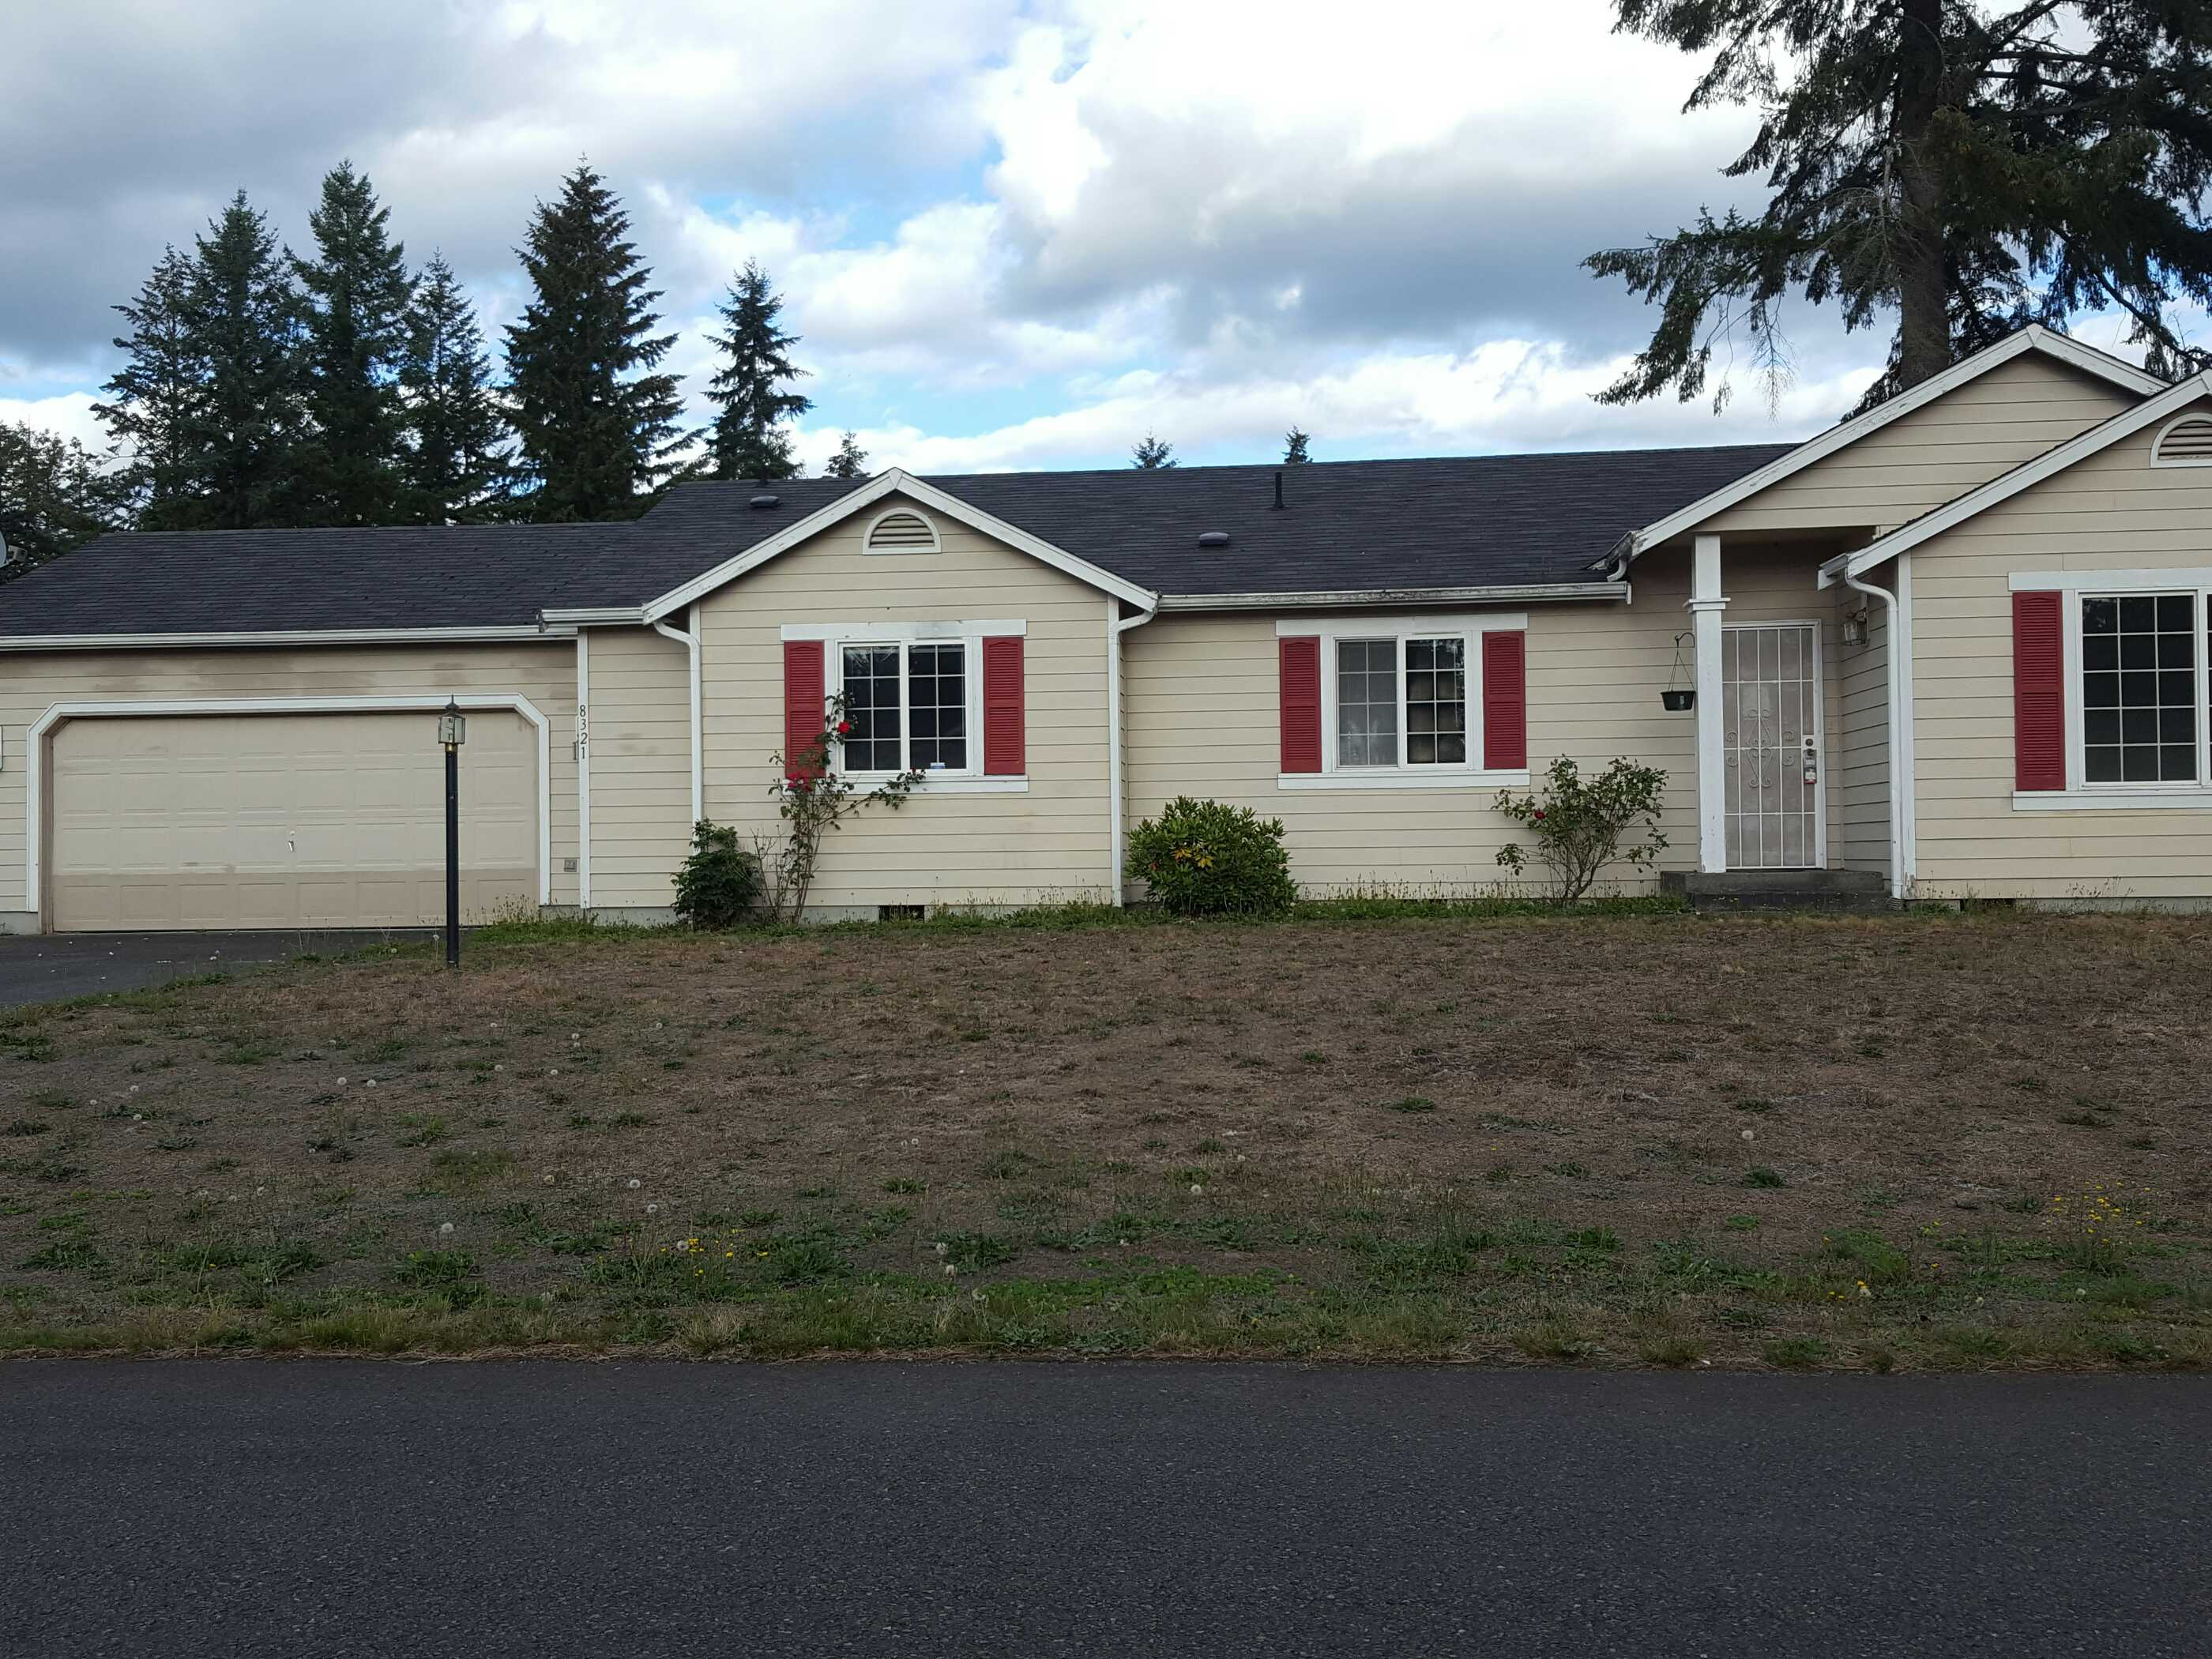 Roy foreclosures – 8321 295th St S, Roy, WA 98580